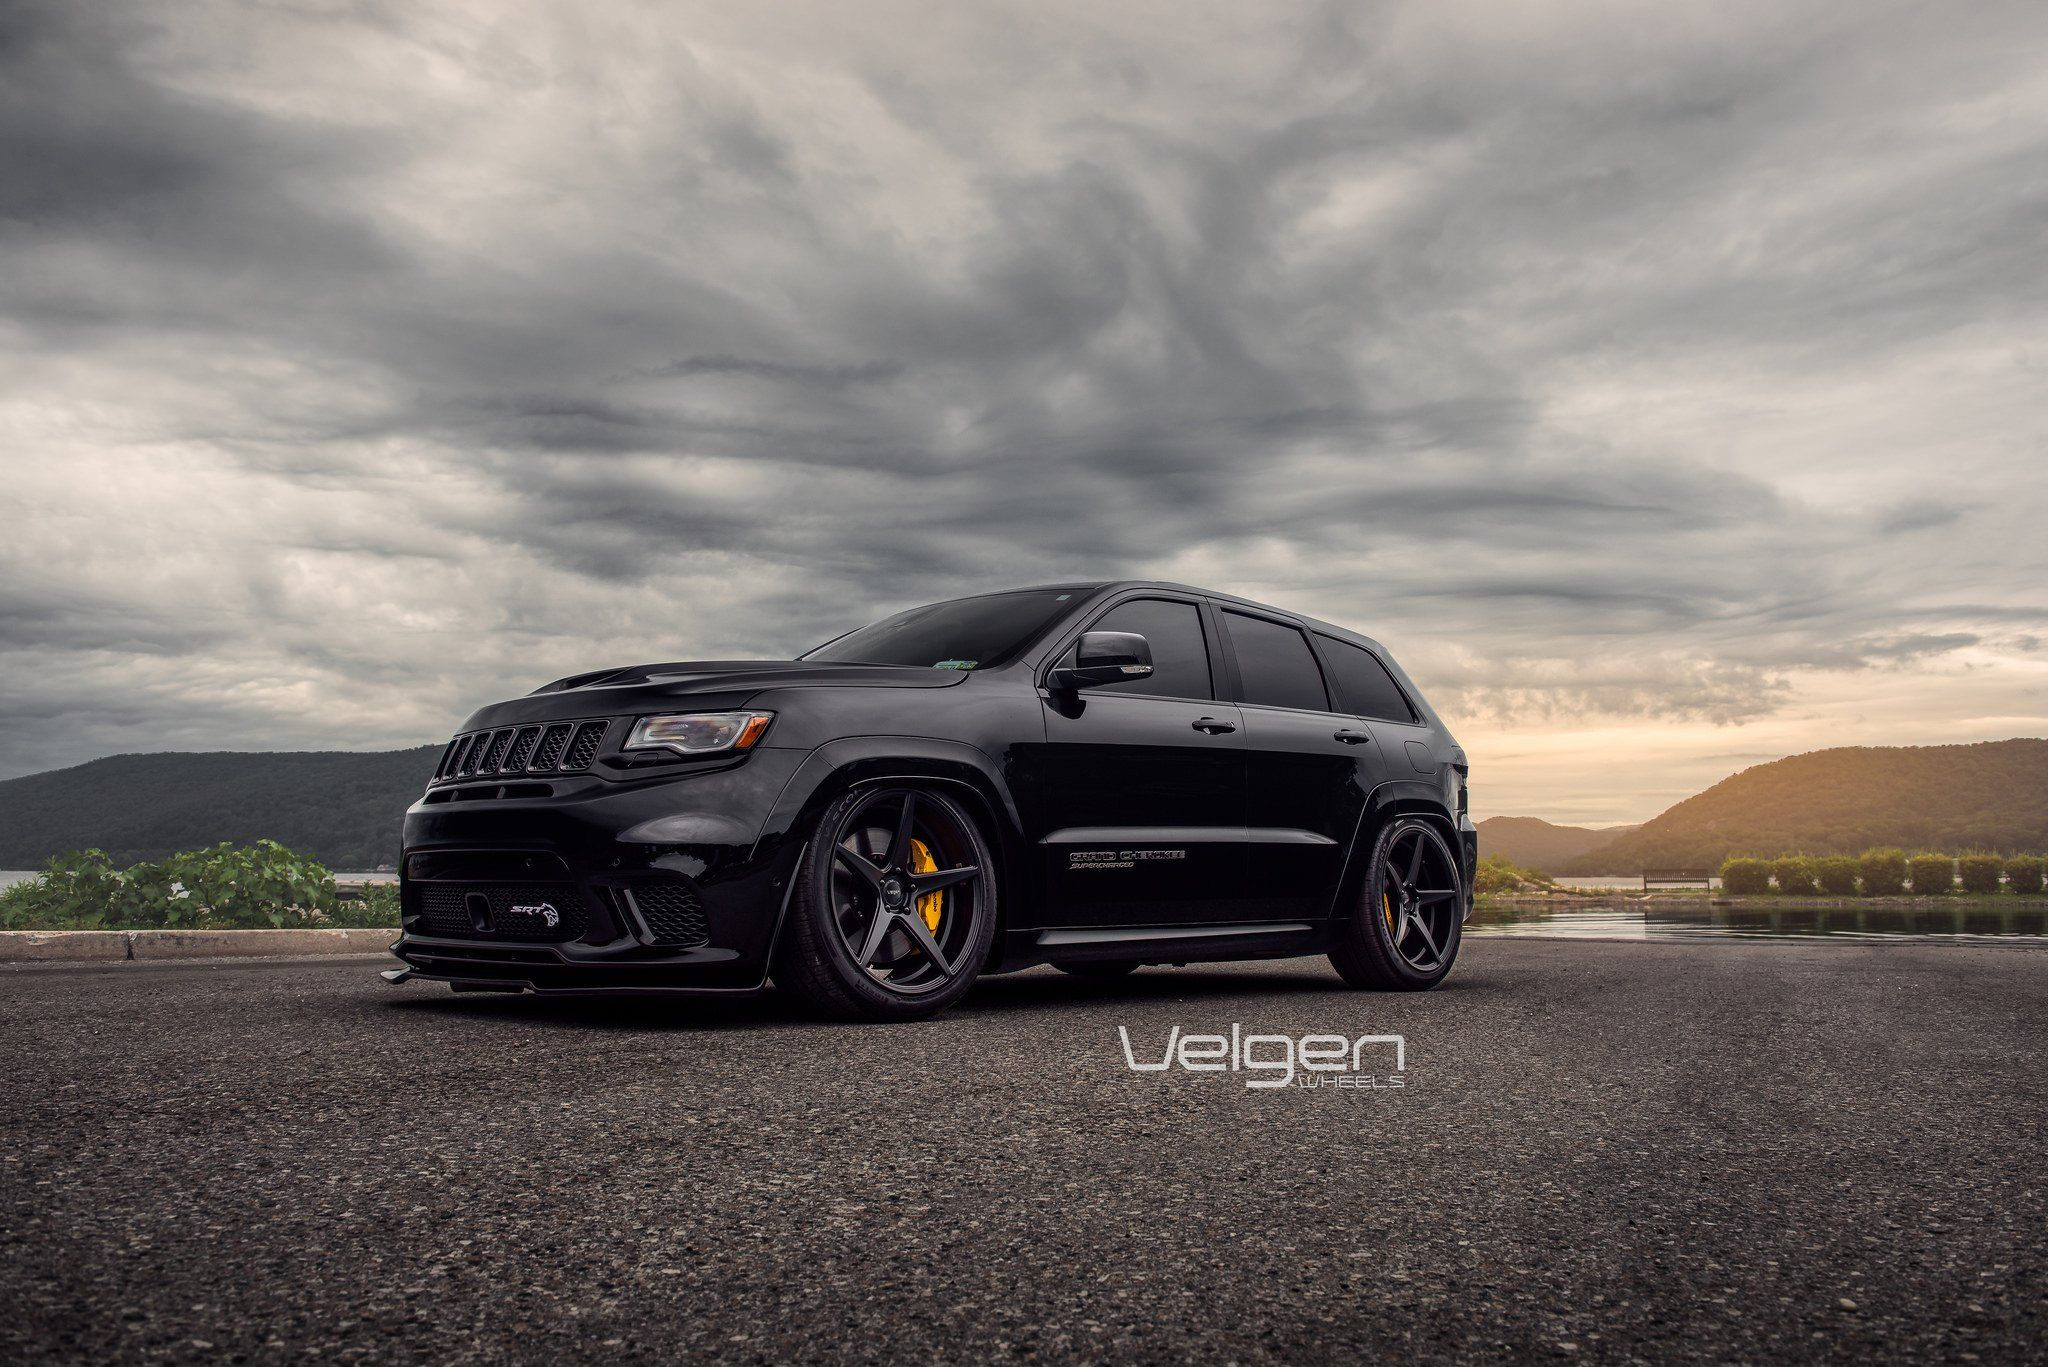 Blacked Out Jeep Grand Cherokee Gets Sharp Look With Aftermarket